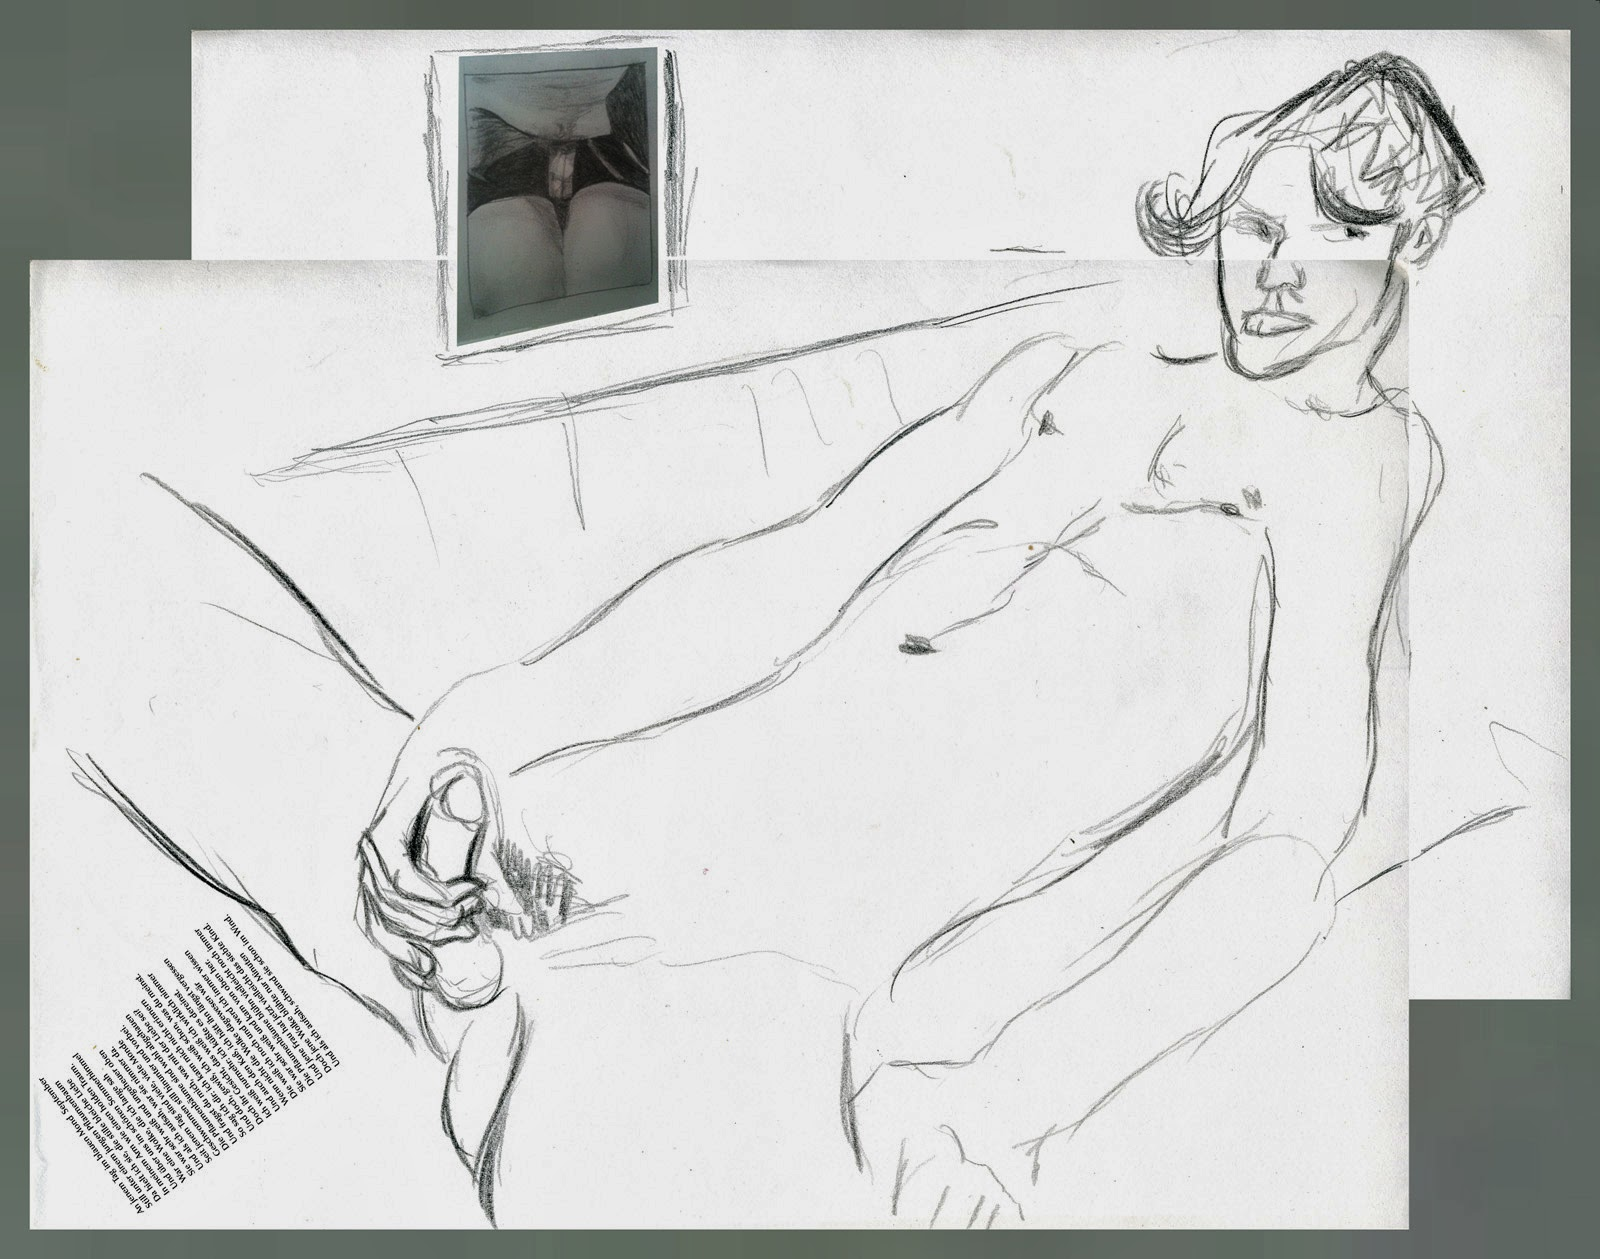 dessin erotique pornographique masturbation jerk-off